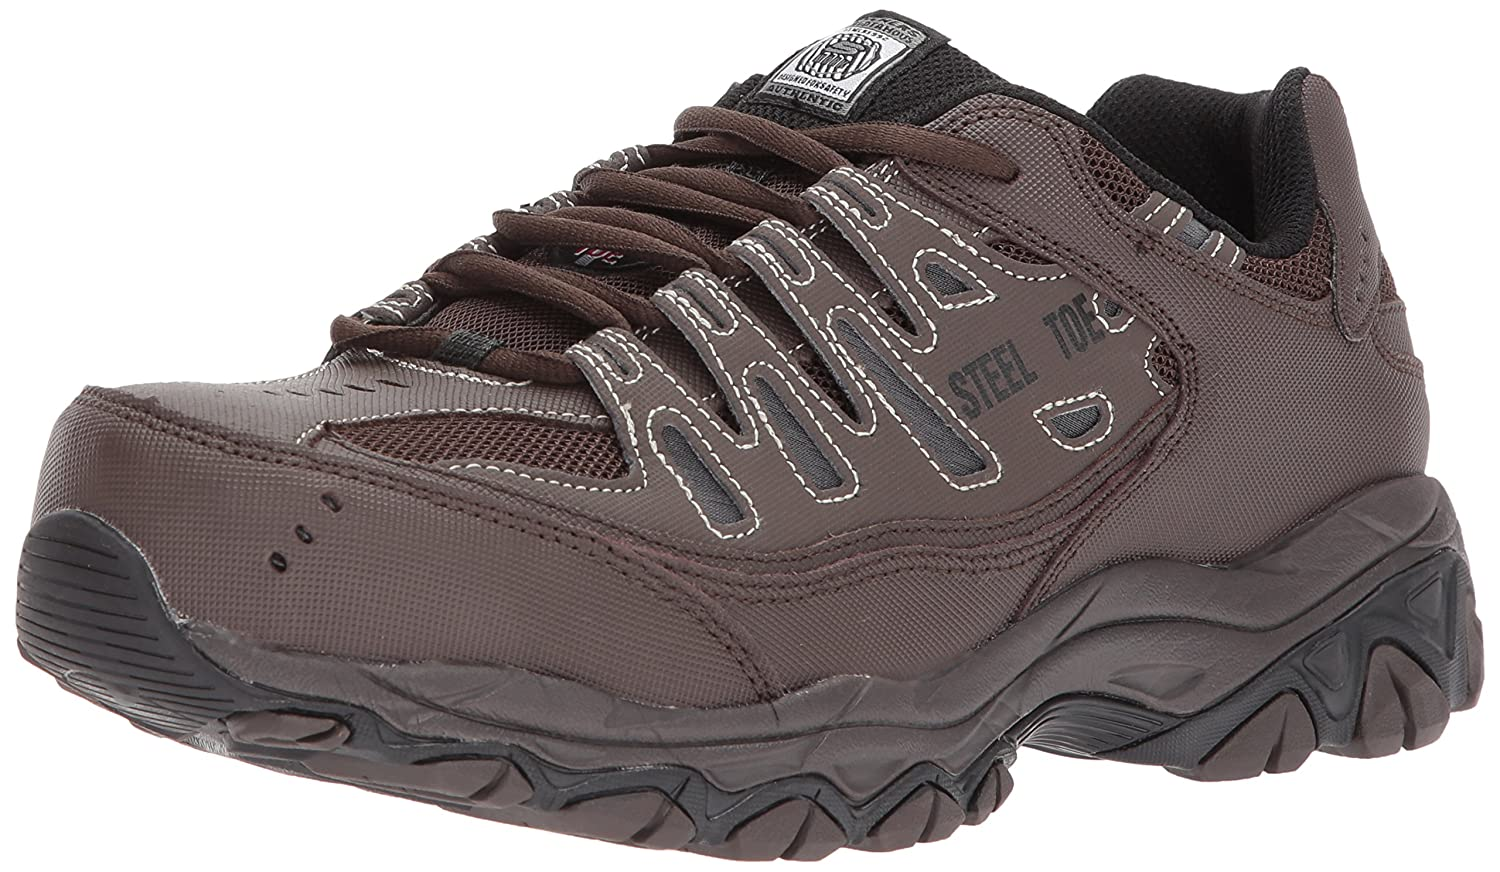 9134e1af6994 Amazon.com  Skechers for Work 77055 Cankton Athletic Steel Toe work  sneaker  Shoes